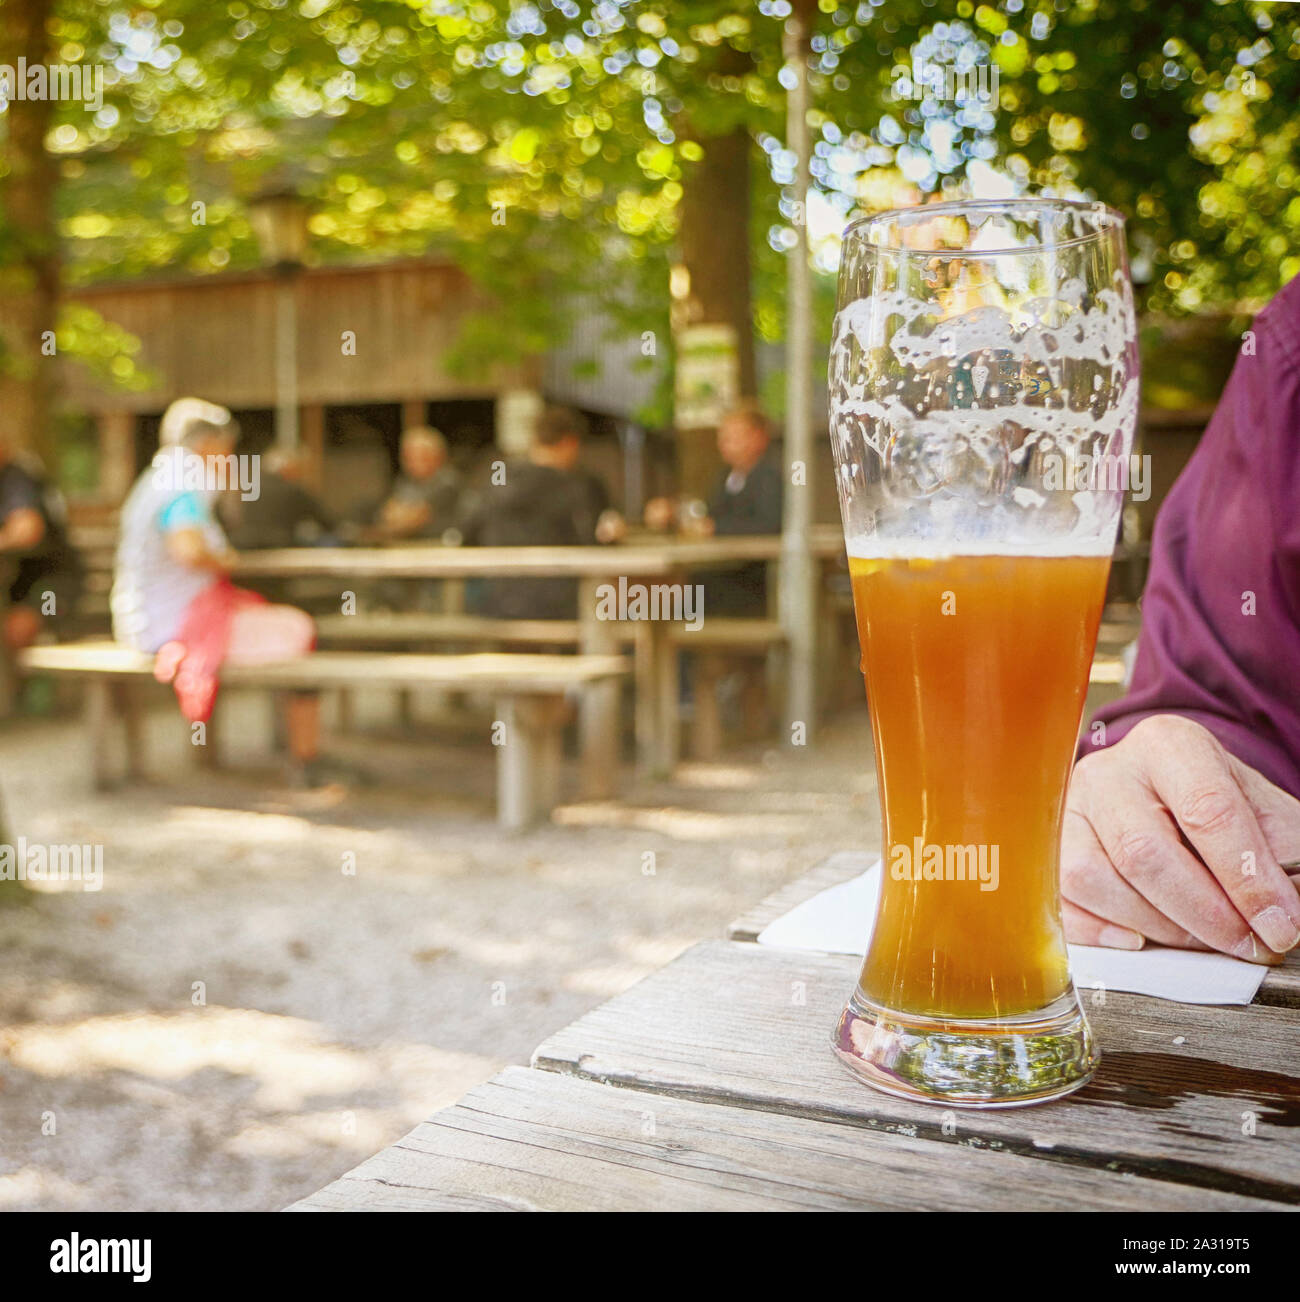 Glass of Bavarian beer at beer garden, blurred background Stock Photo